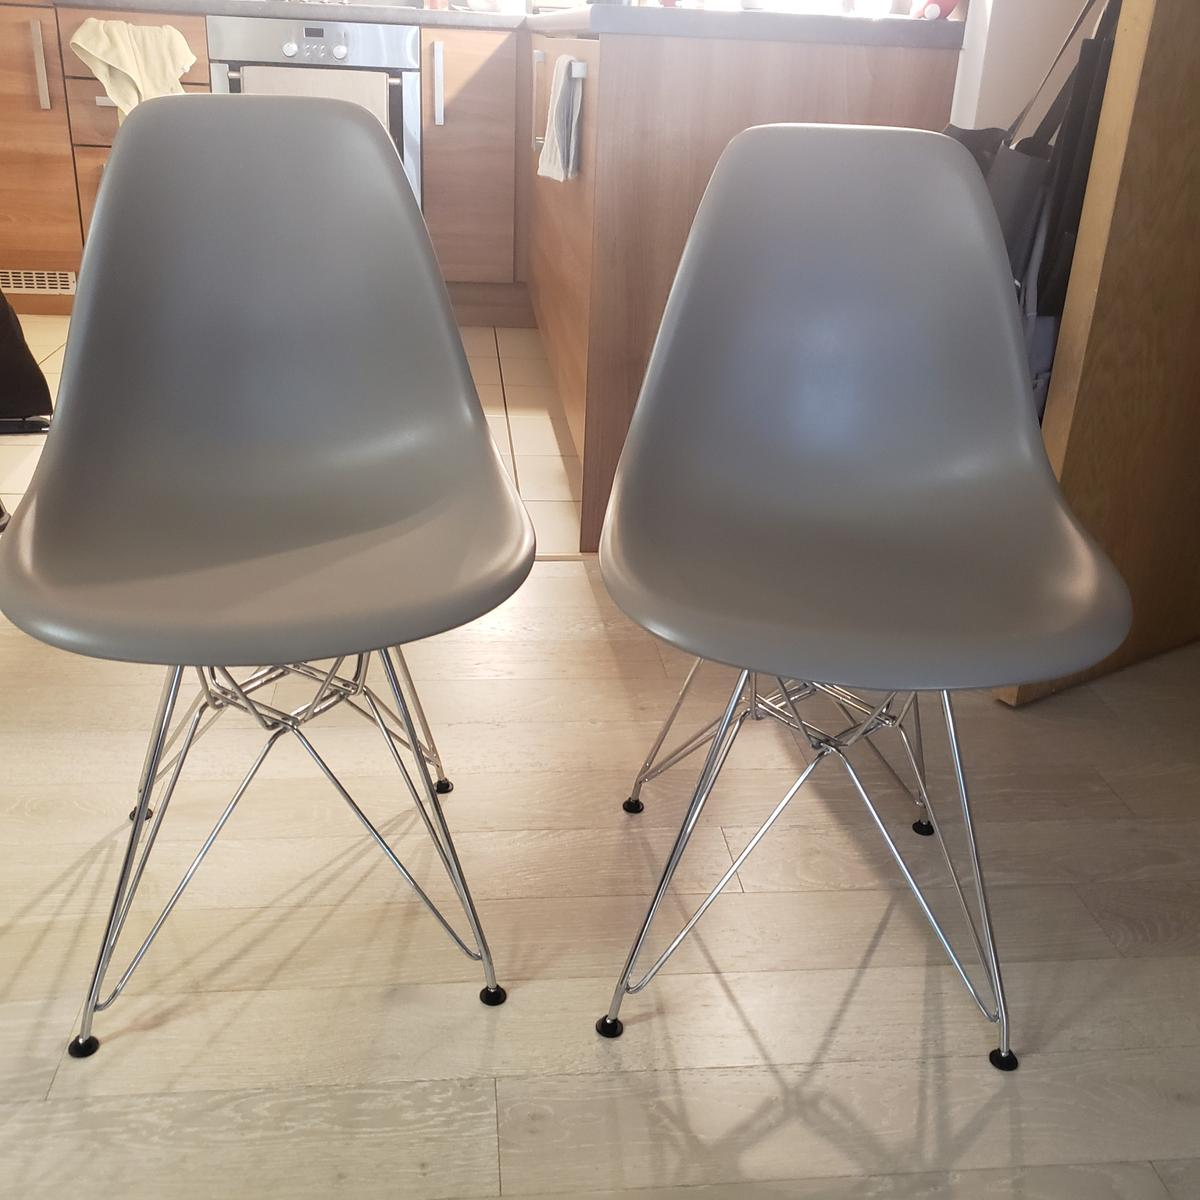 Used Dwell Eiffel Dining Chairs x9 for Sale in HA9 Brent für £ 9 ...